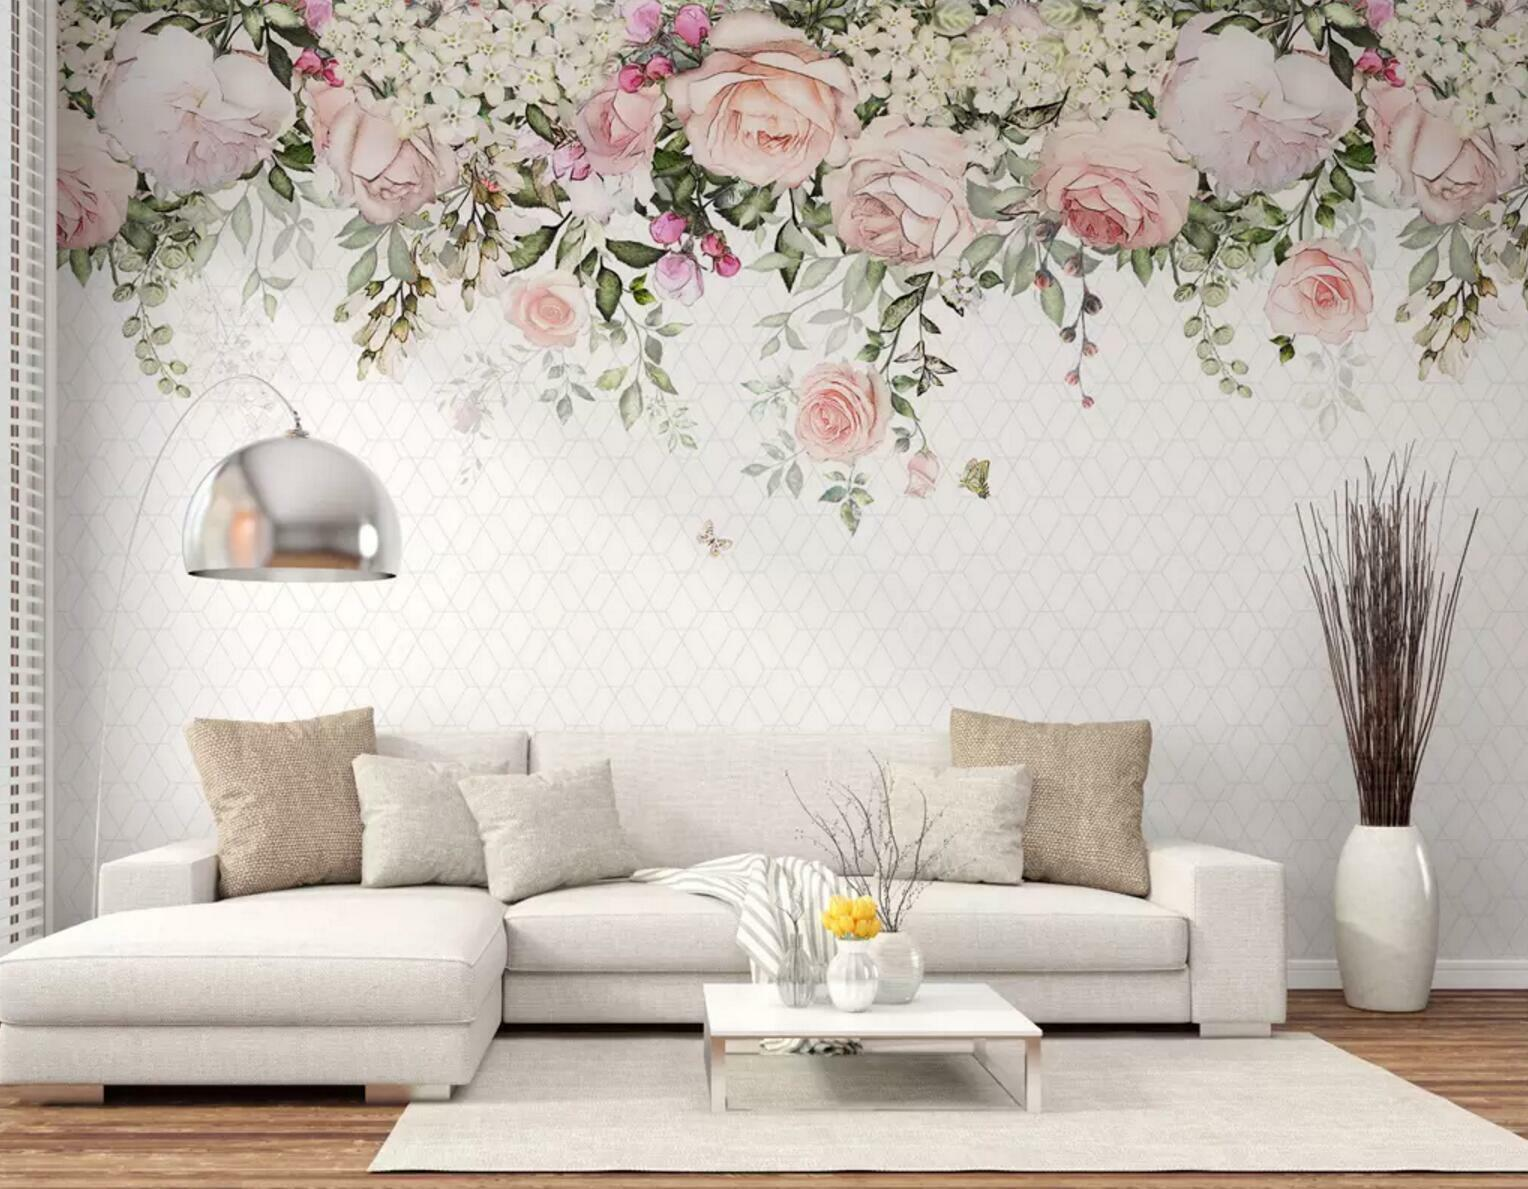 3D Flower Grün Vine 48 Wall Paper Exclusive MXY Wallpaper Mural Decal Indoor AJ